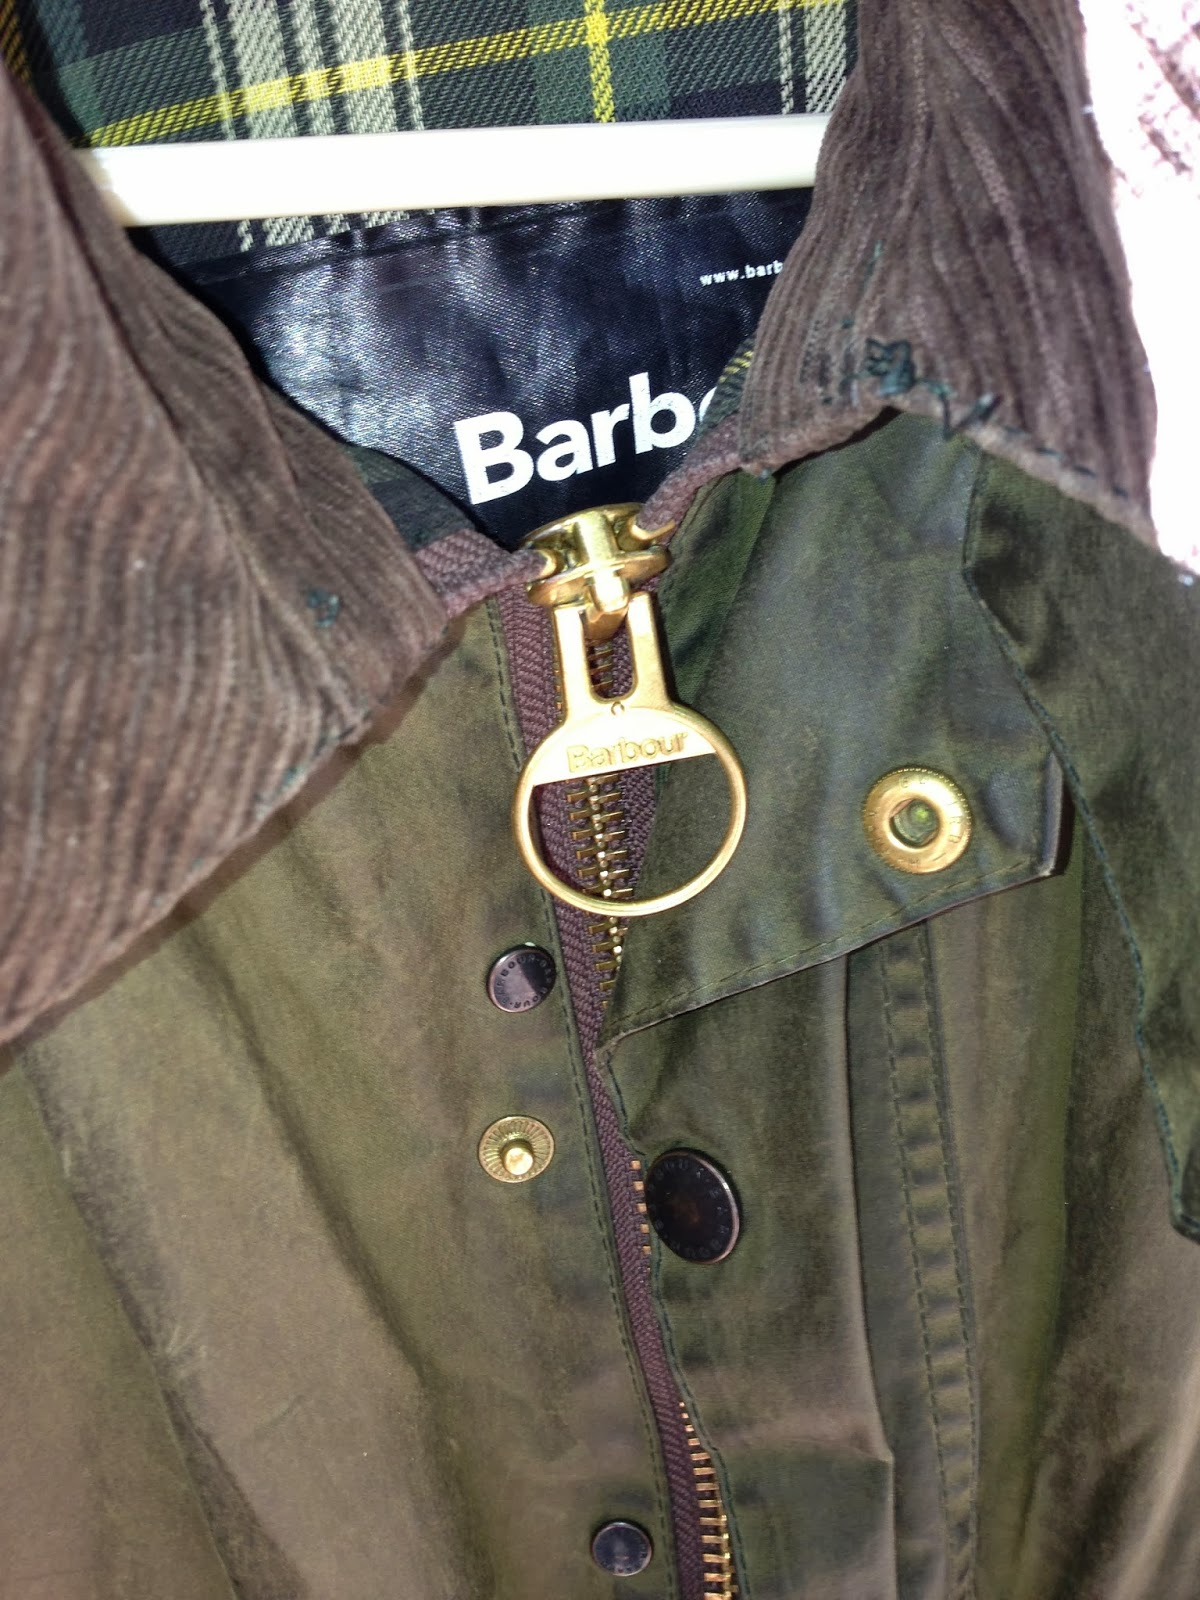 Odysseus Trunk Reproofing The Barbour Beaufort